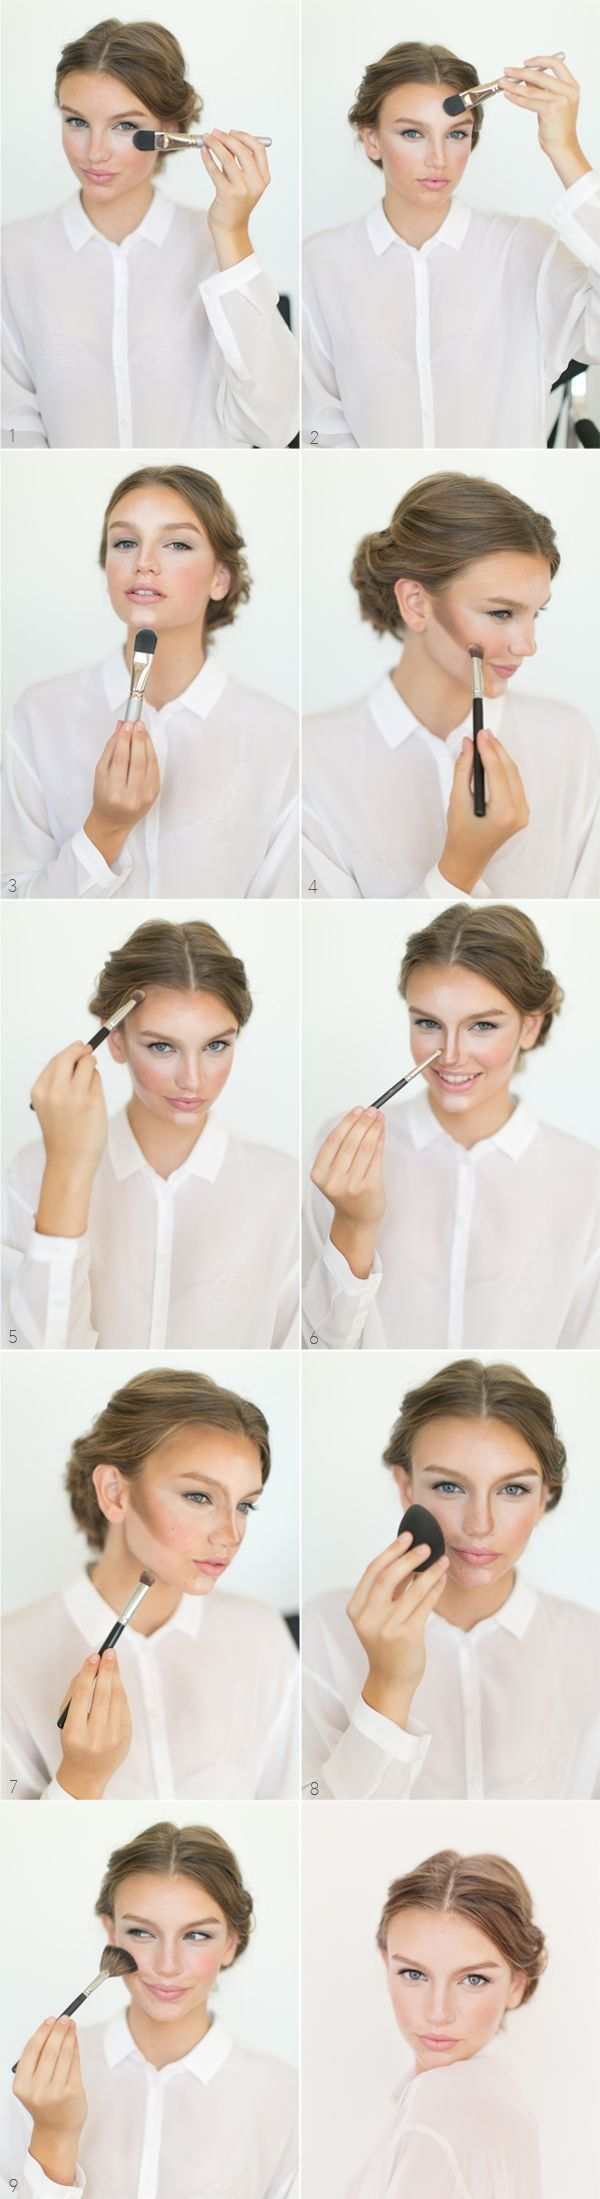 Make-up tutorial! Simple step by step to shading and contouring your face…